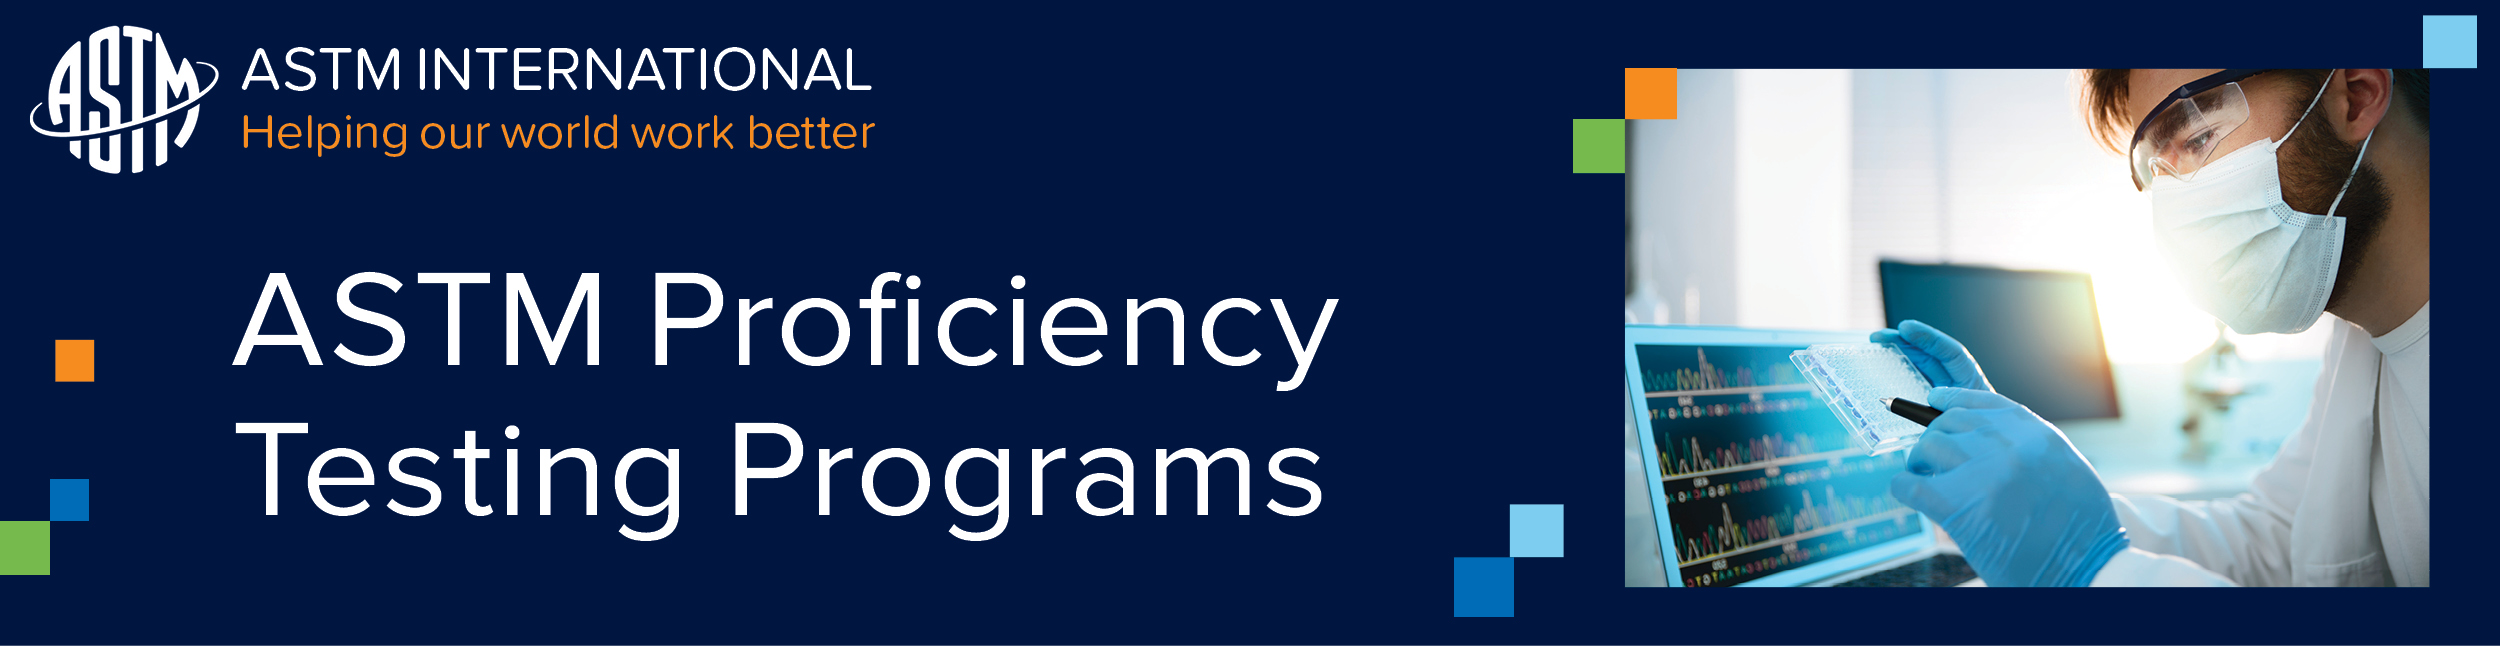 Learn More About ASTM Proficiency Testing Programs